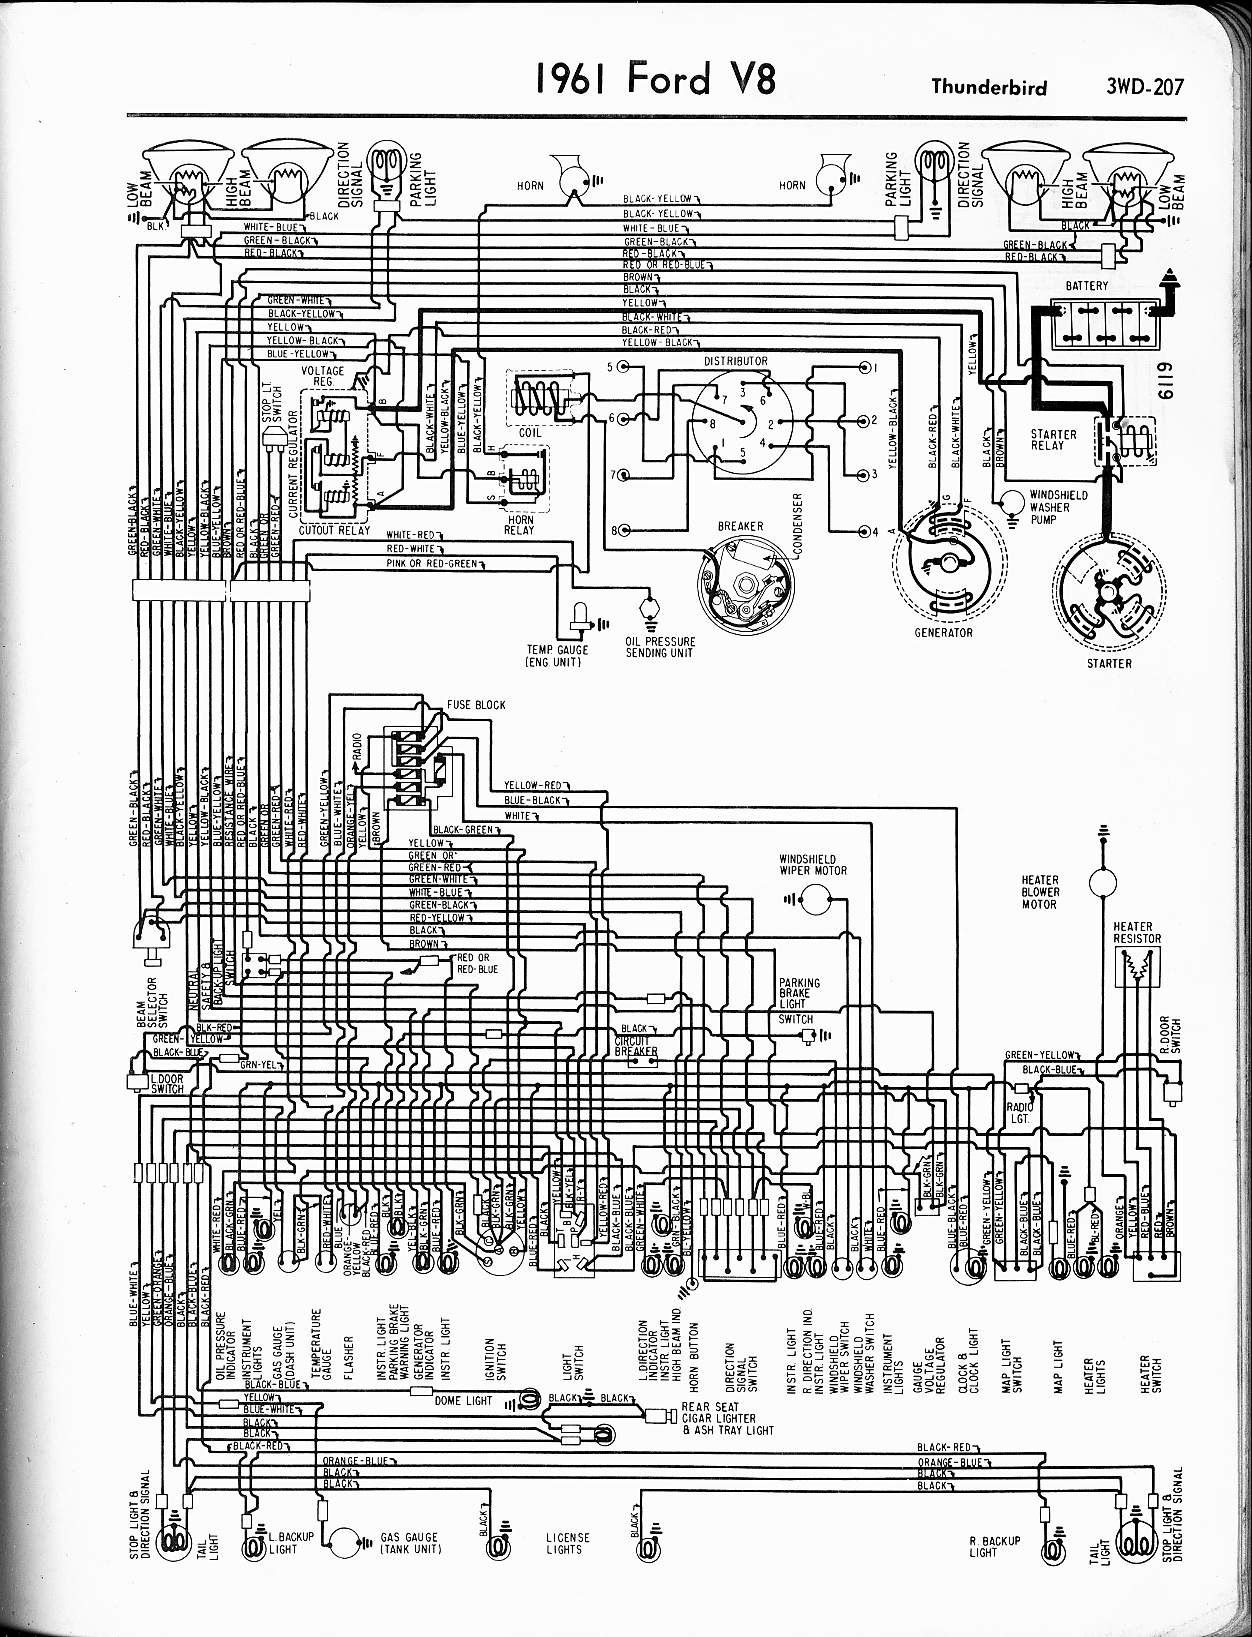 1966 Ford F150 Wiring Diagram Library 66 57 65 Diagrams 1961 F100 For Color Pick Up